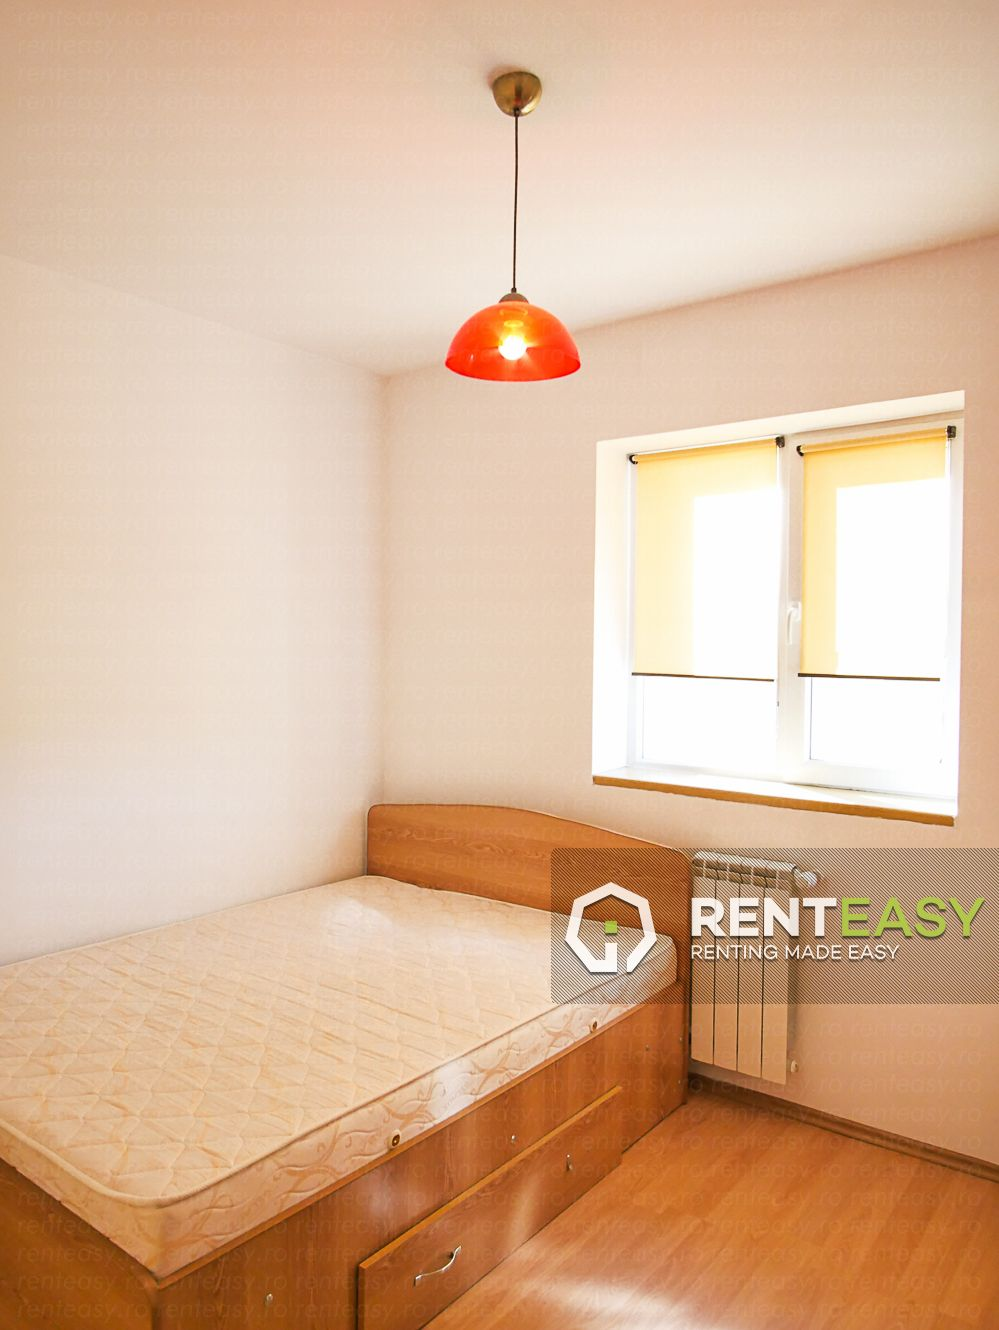 2 Bedroom Apartments For Rent In Staten Island: 2 Bedroom Apartment In Green Park